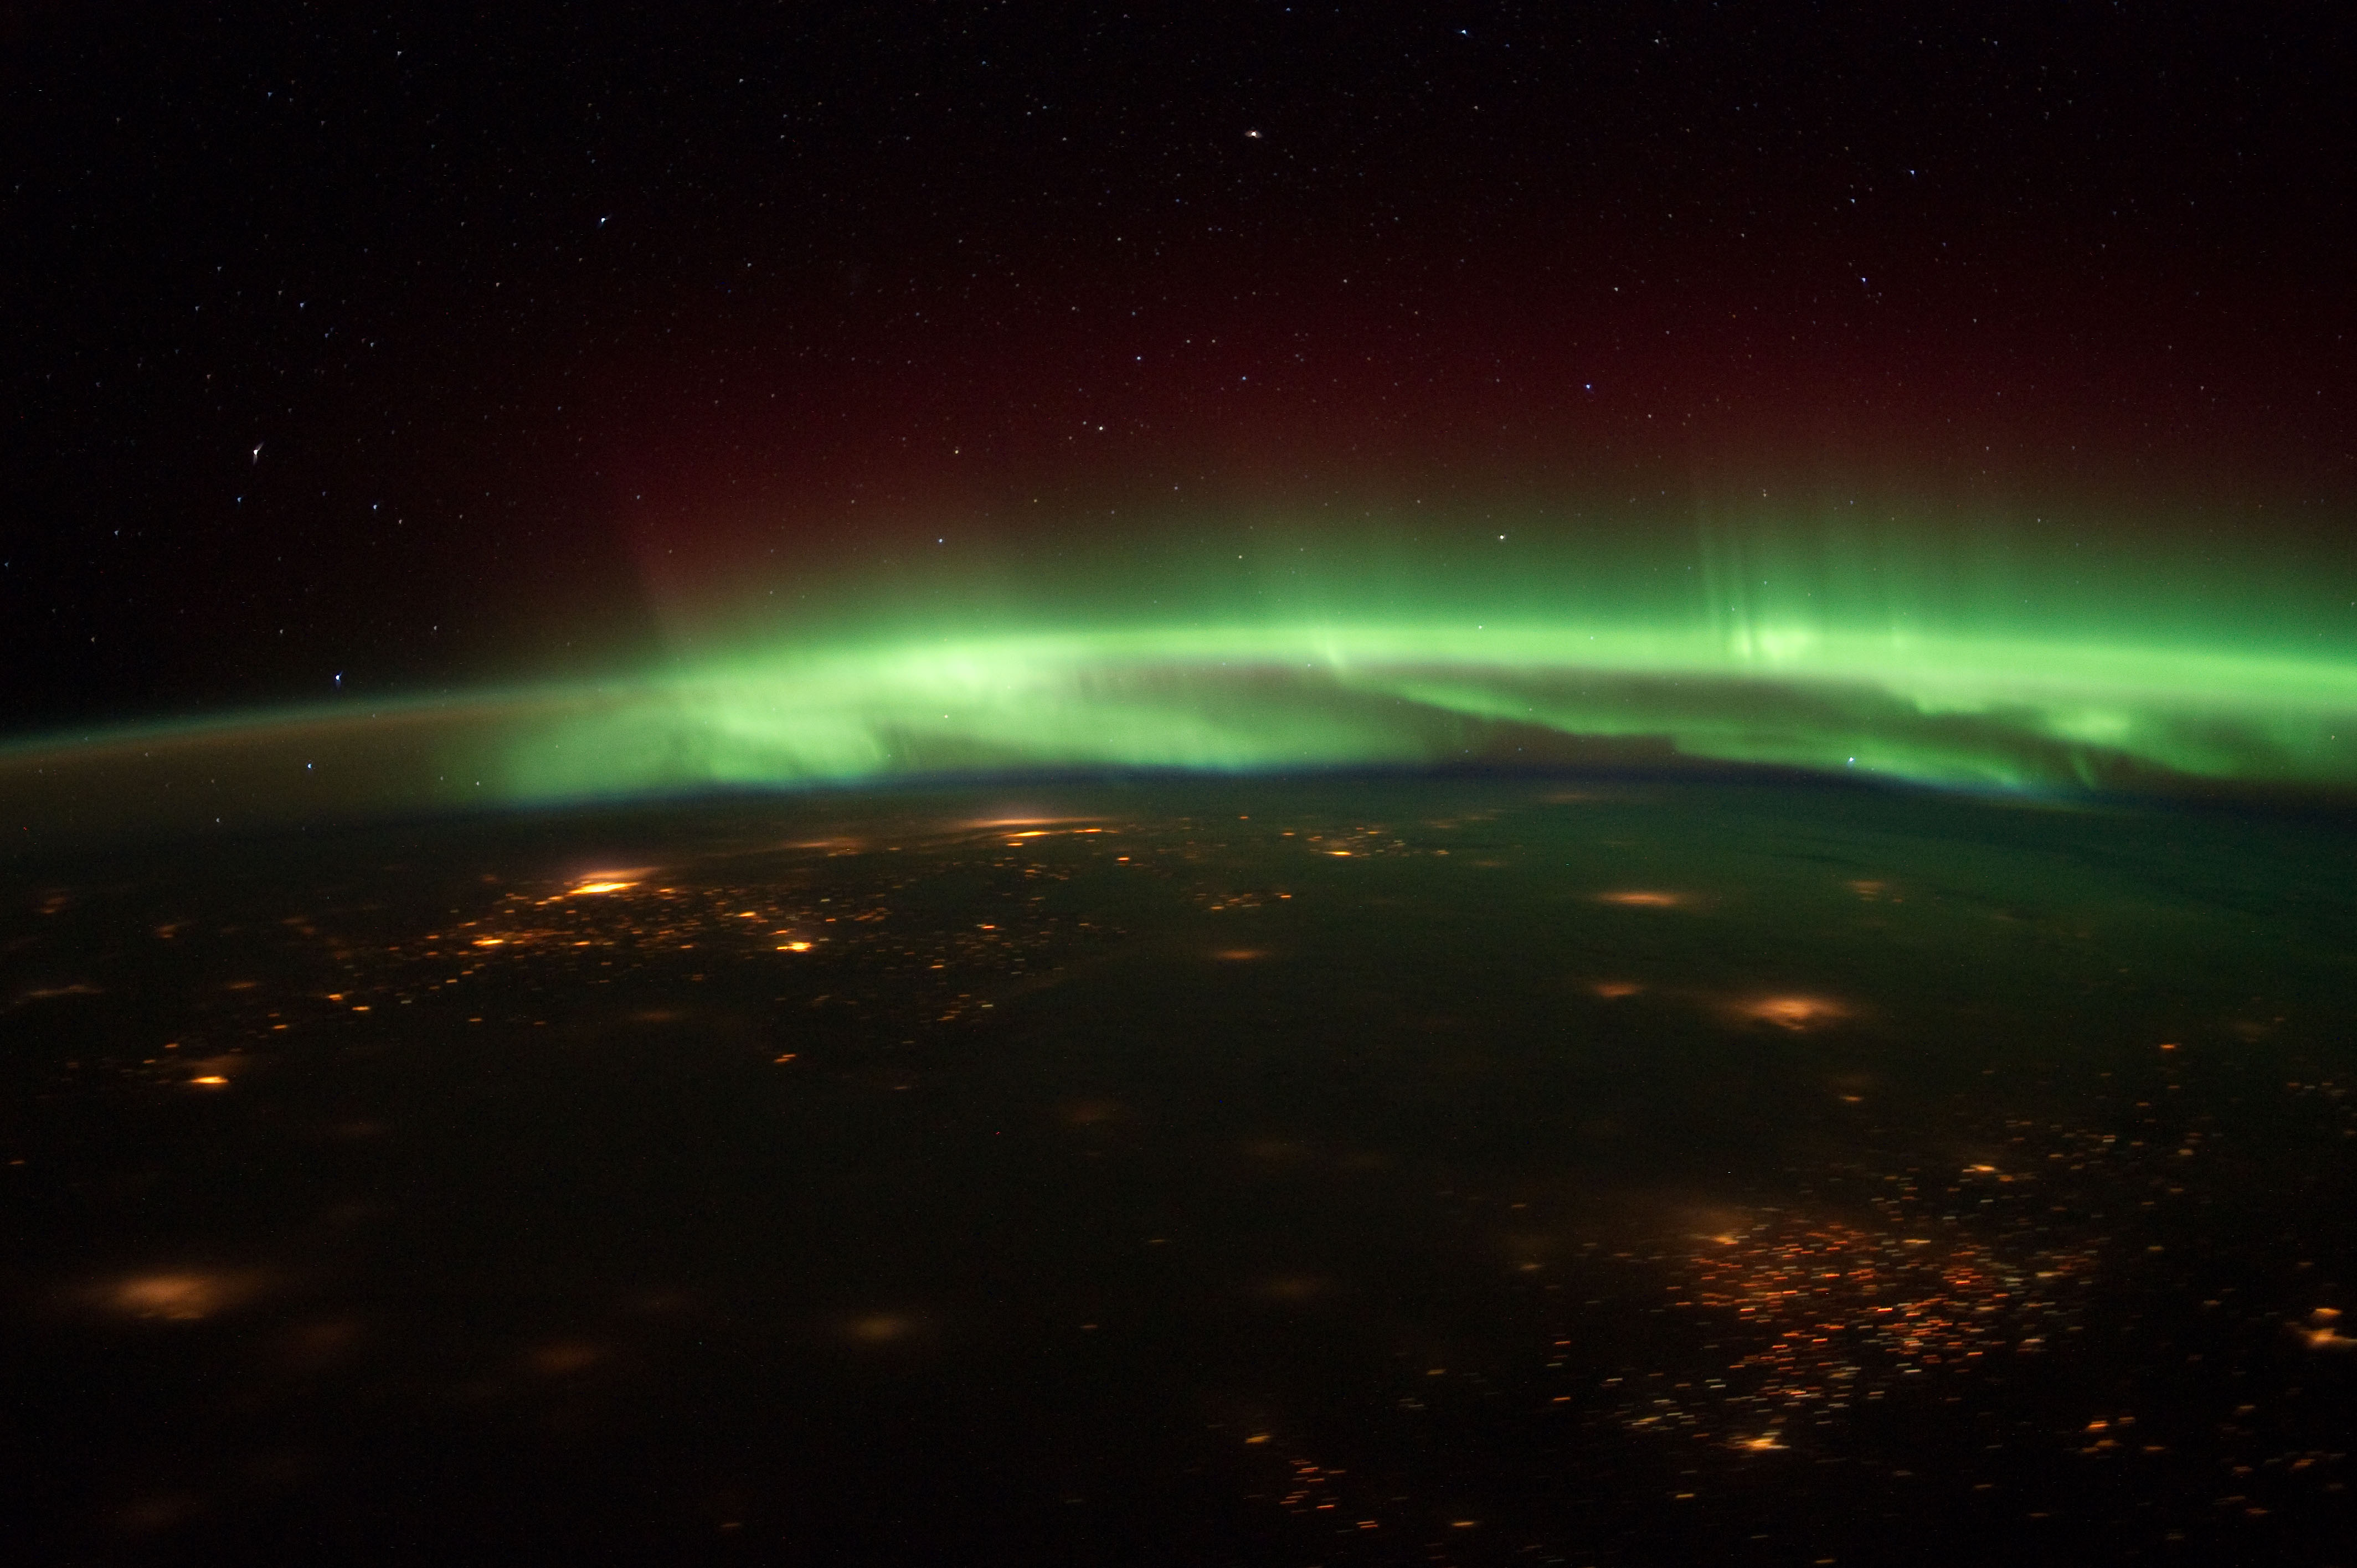 Astronauts Snap Amazing Northern Lights Videos From Space